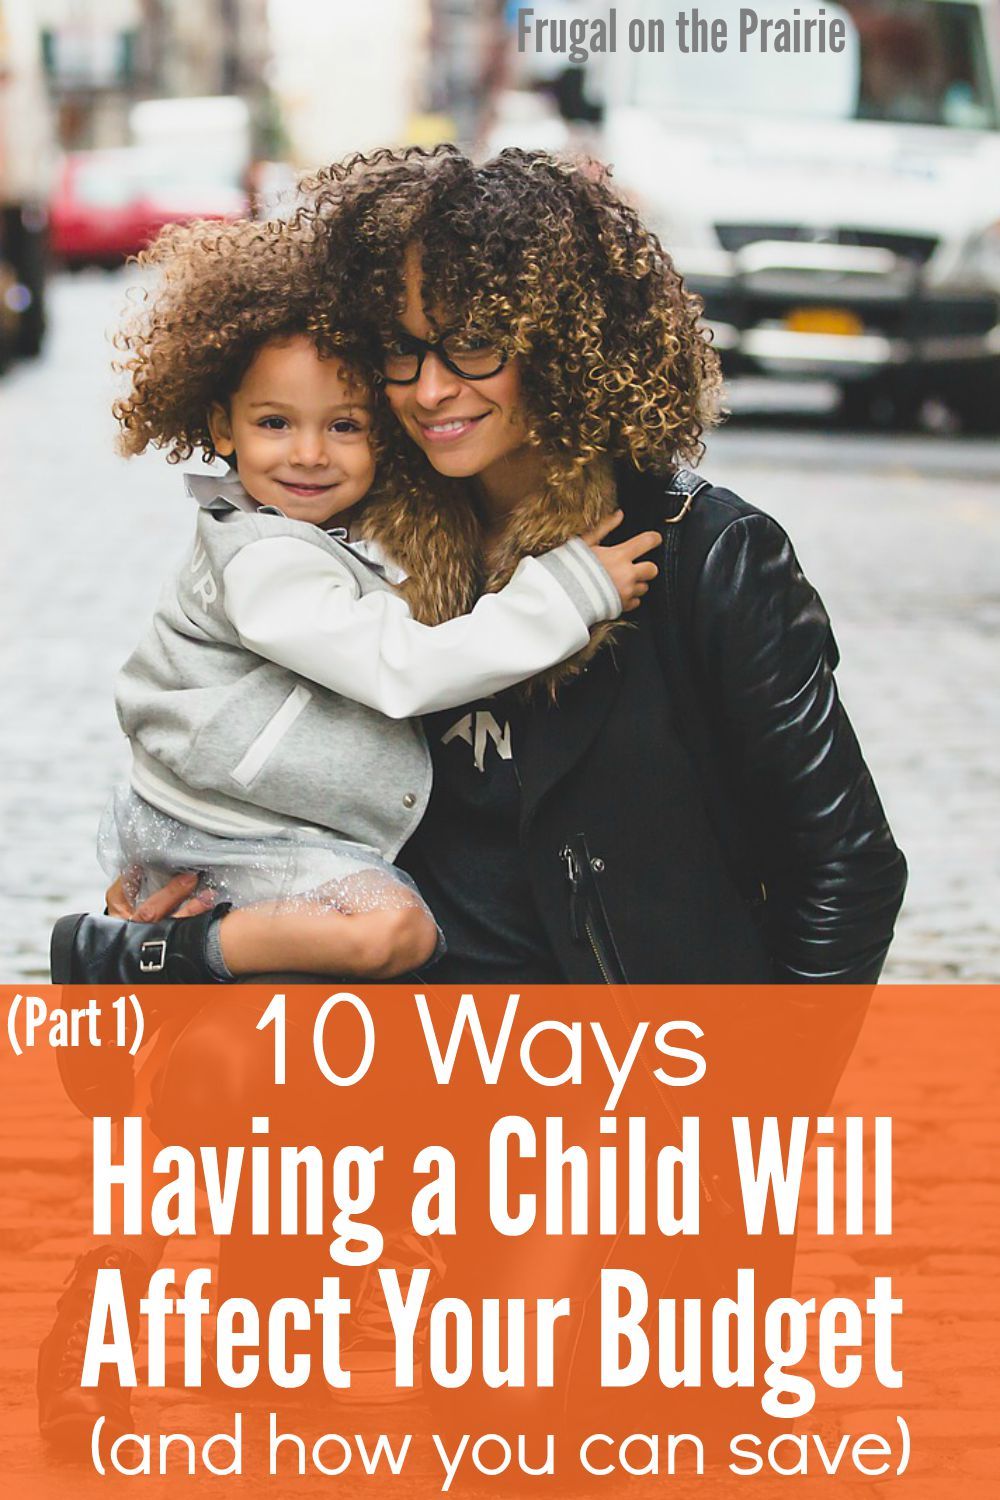 Are you worried about budgeting for a baby? Here are 10 ways having a child will affect your budget, and how you can save money. Part 1 of 2.